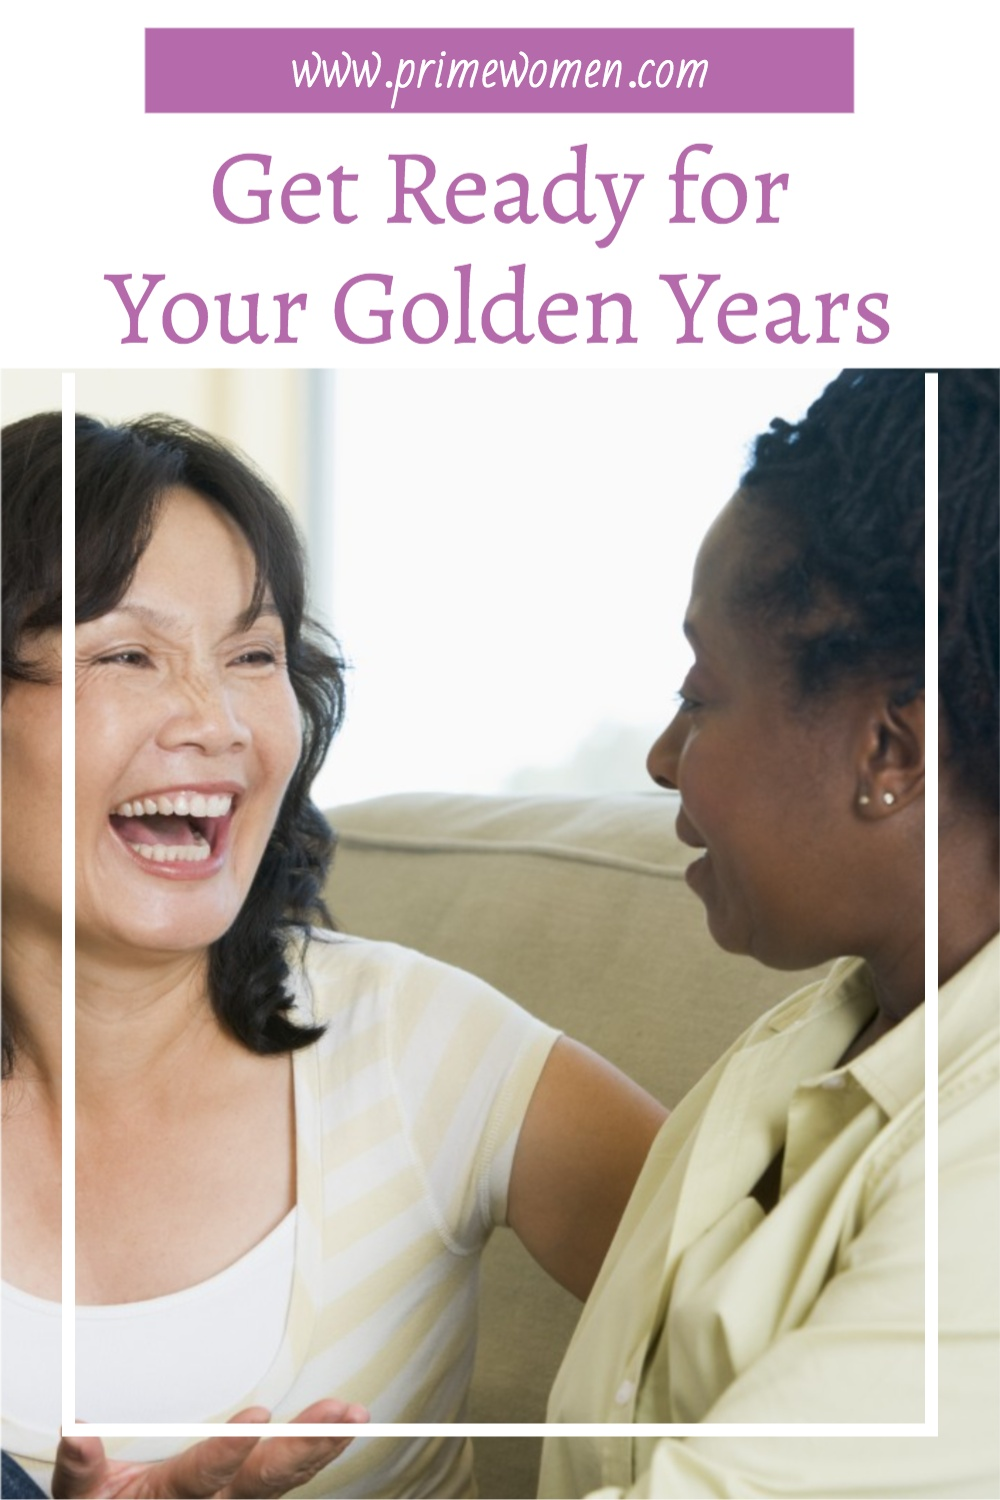 Get-Ready-for-Your-Golden-Years